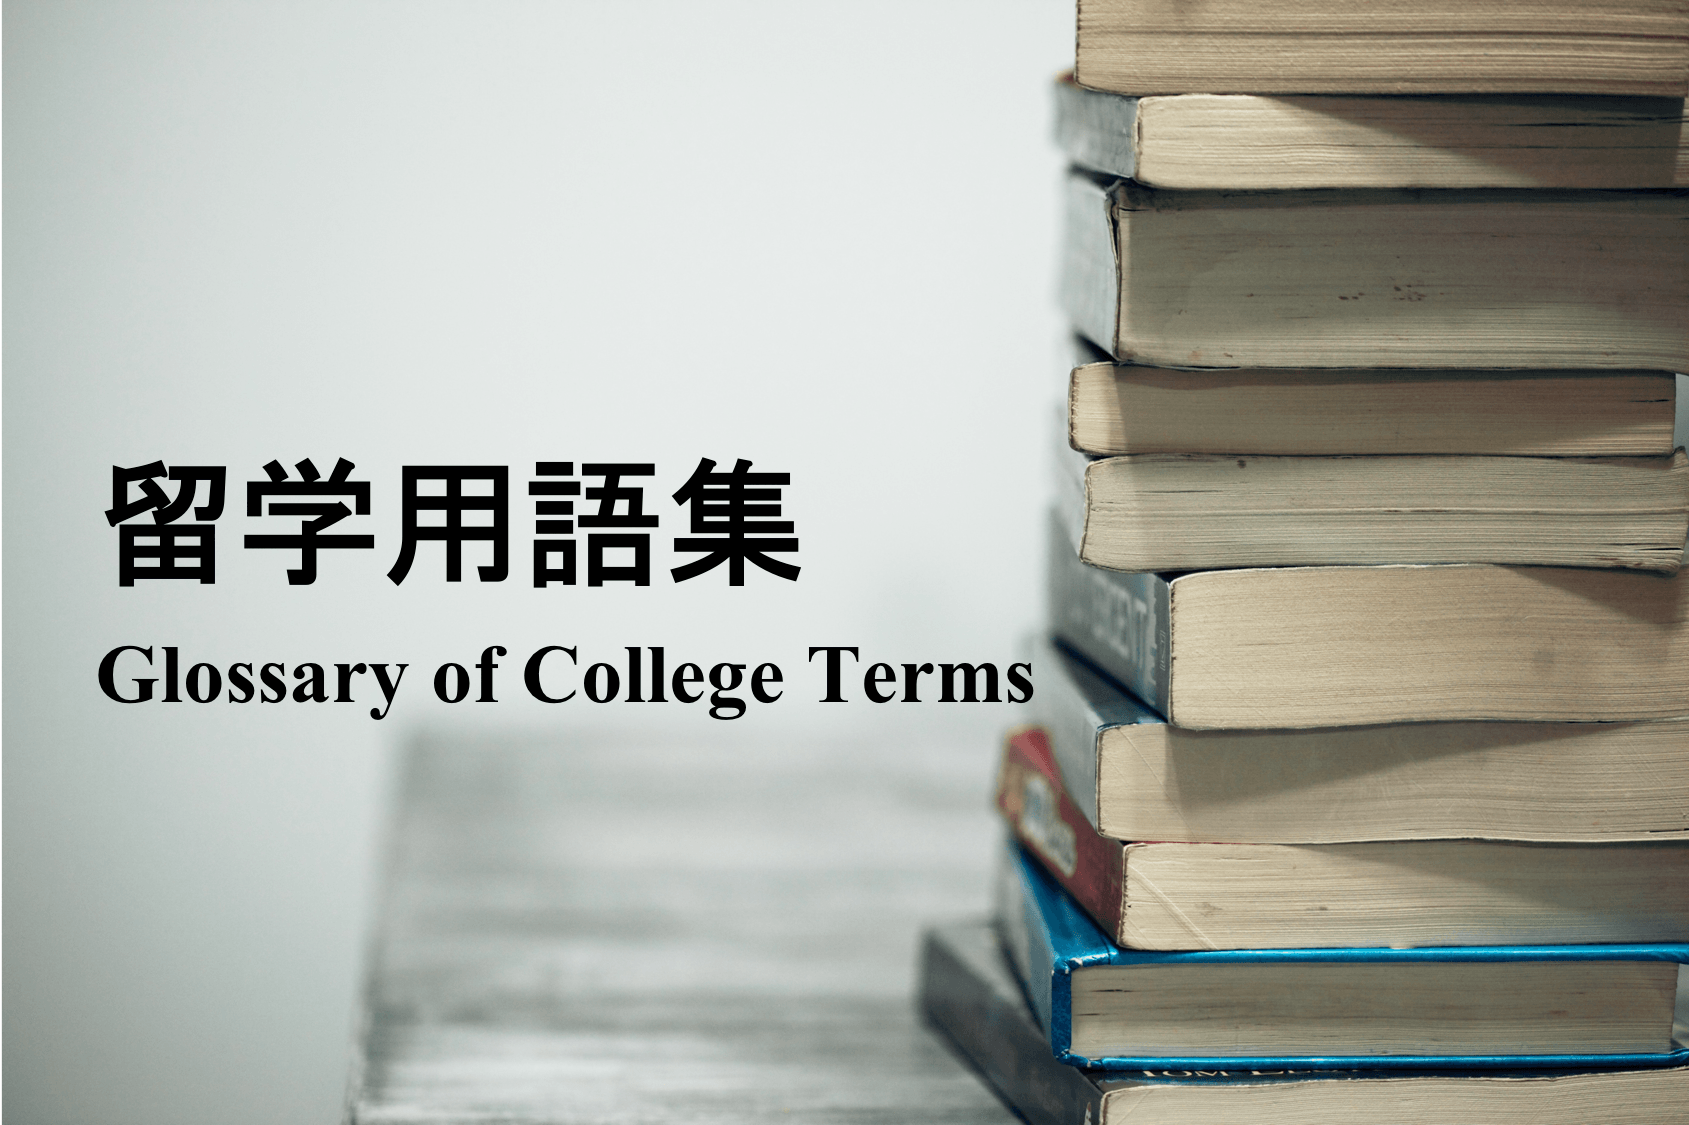 Glossary of College Terms